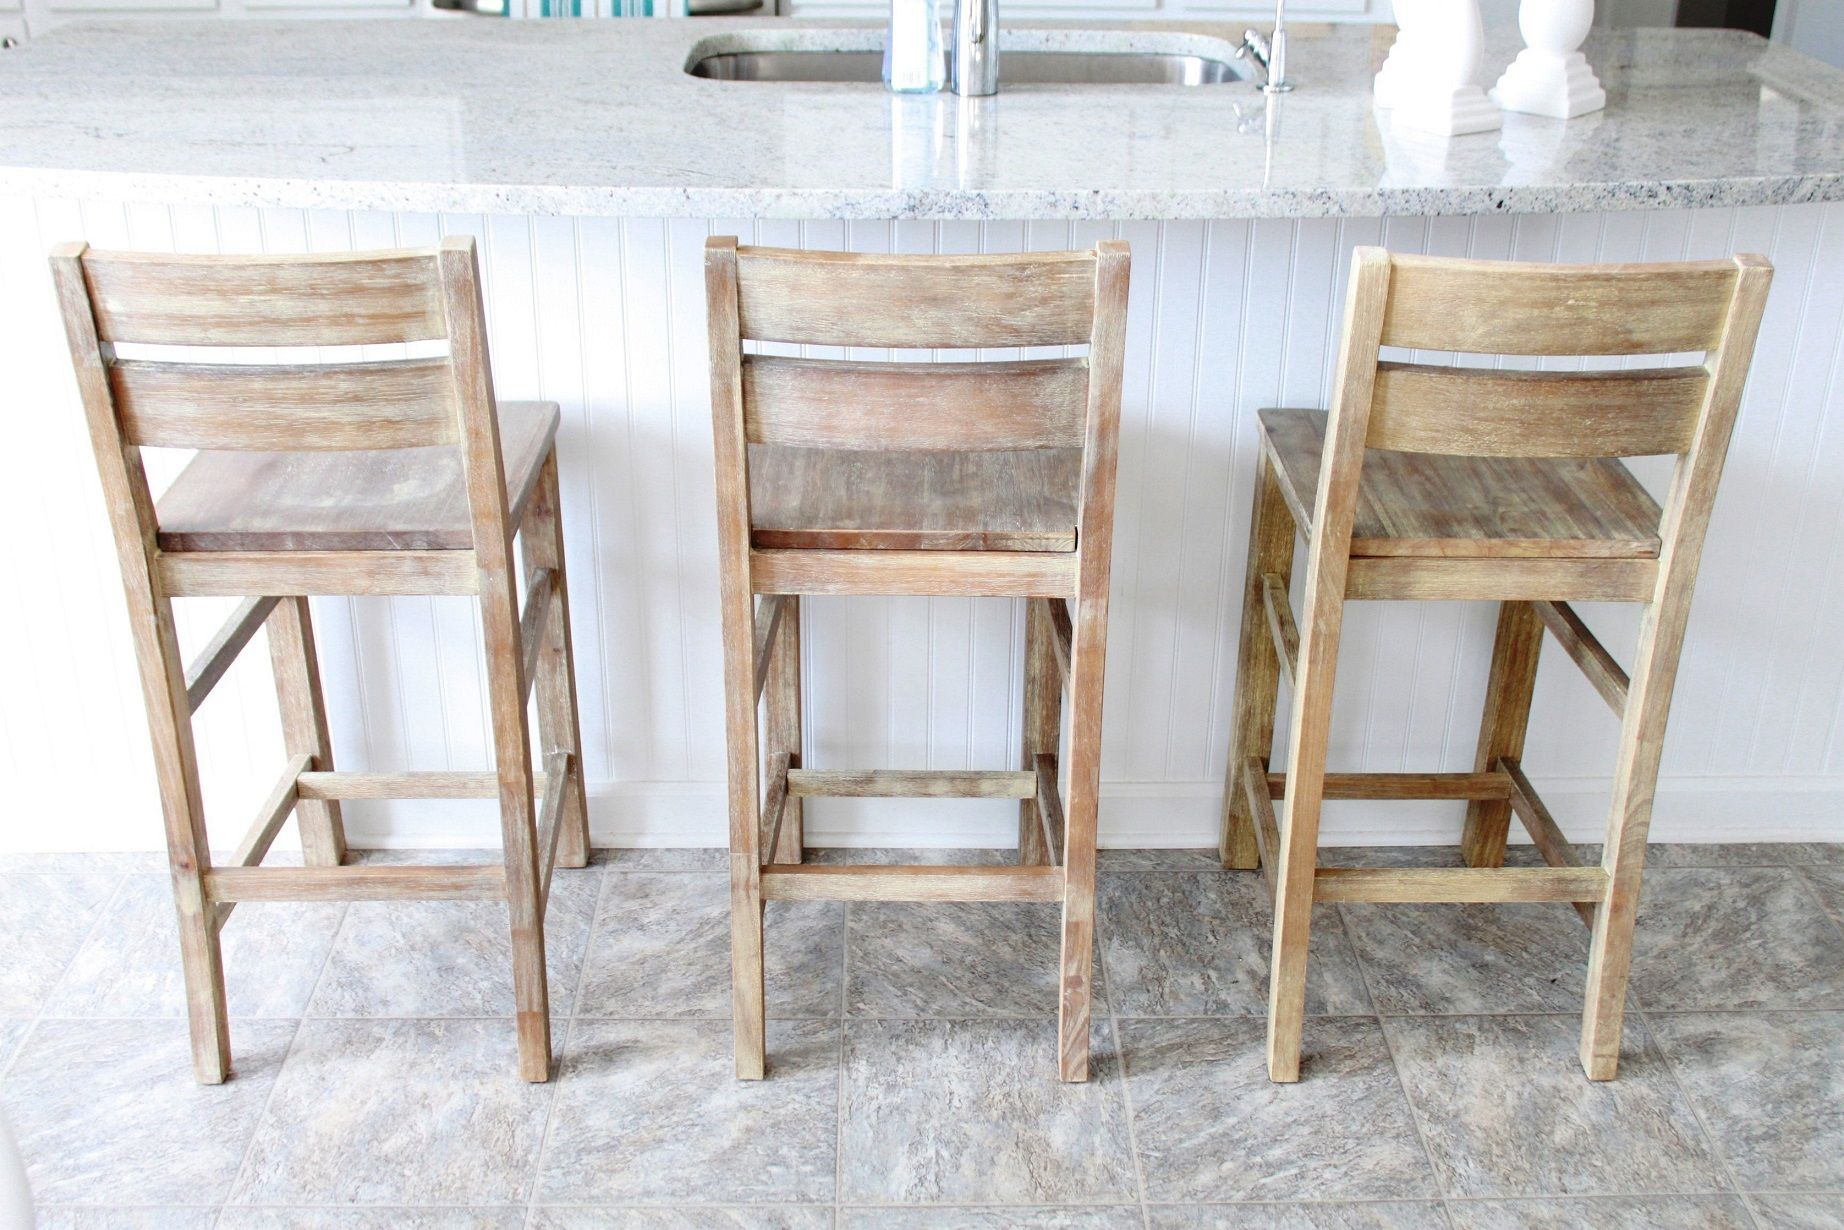 DIY Bar Stools with Backs Ideas | Kitchen in 2018 ...